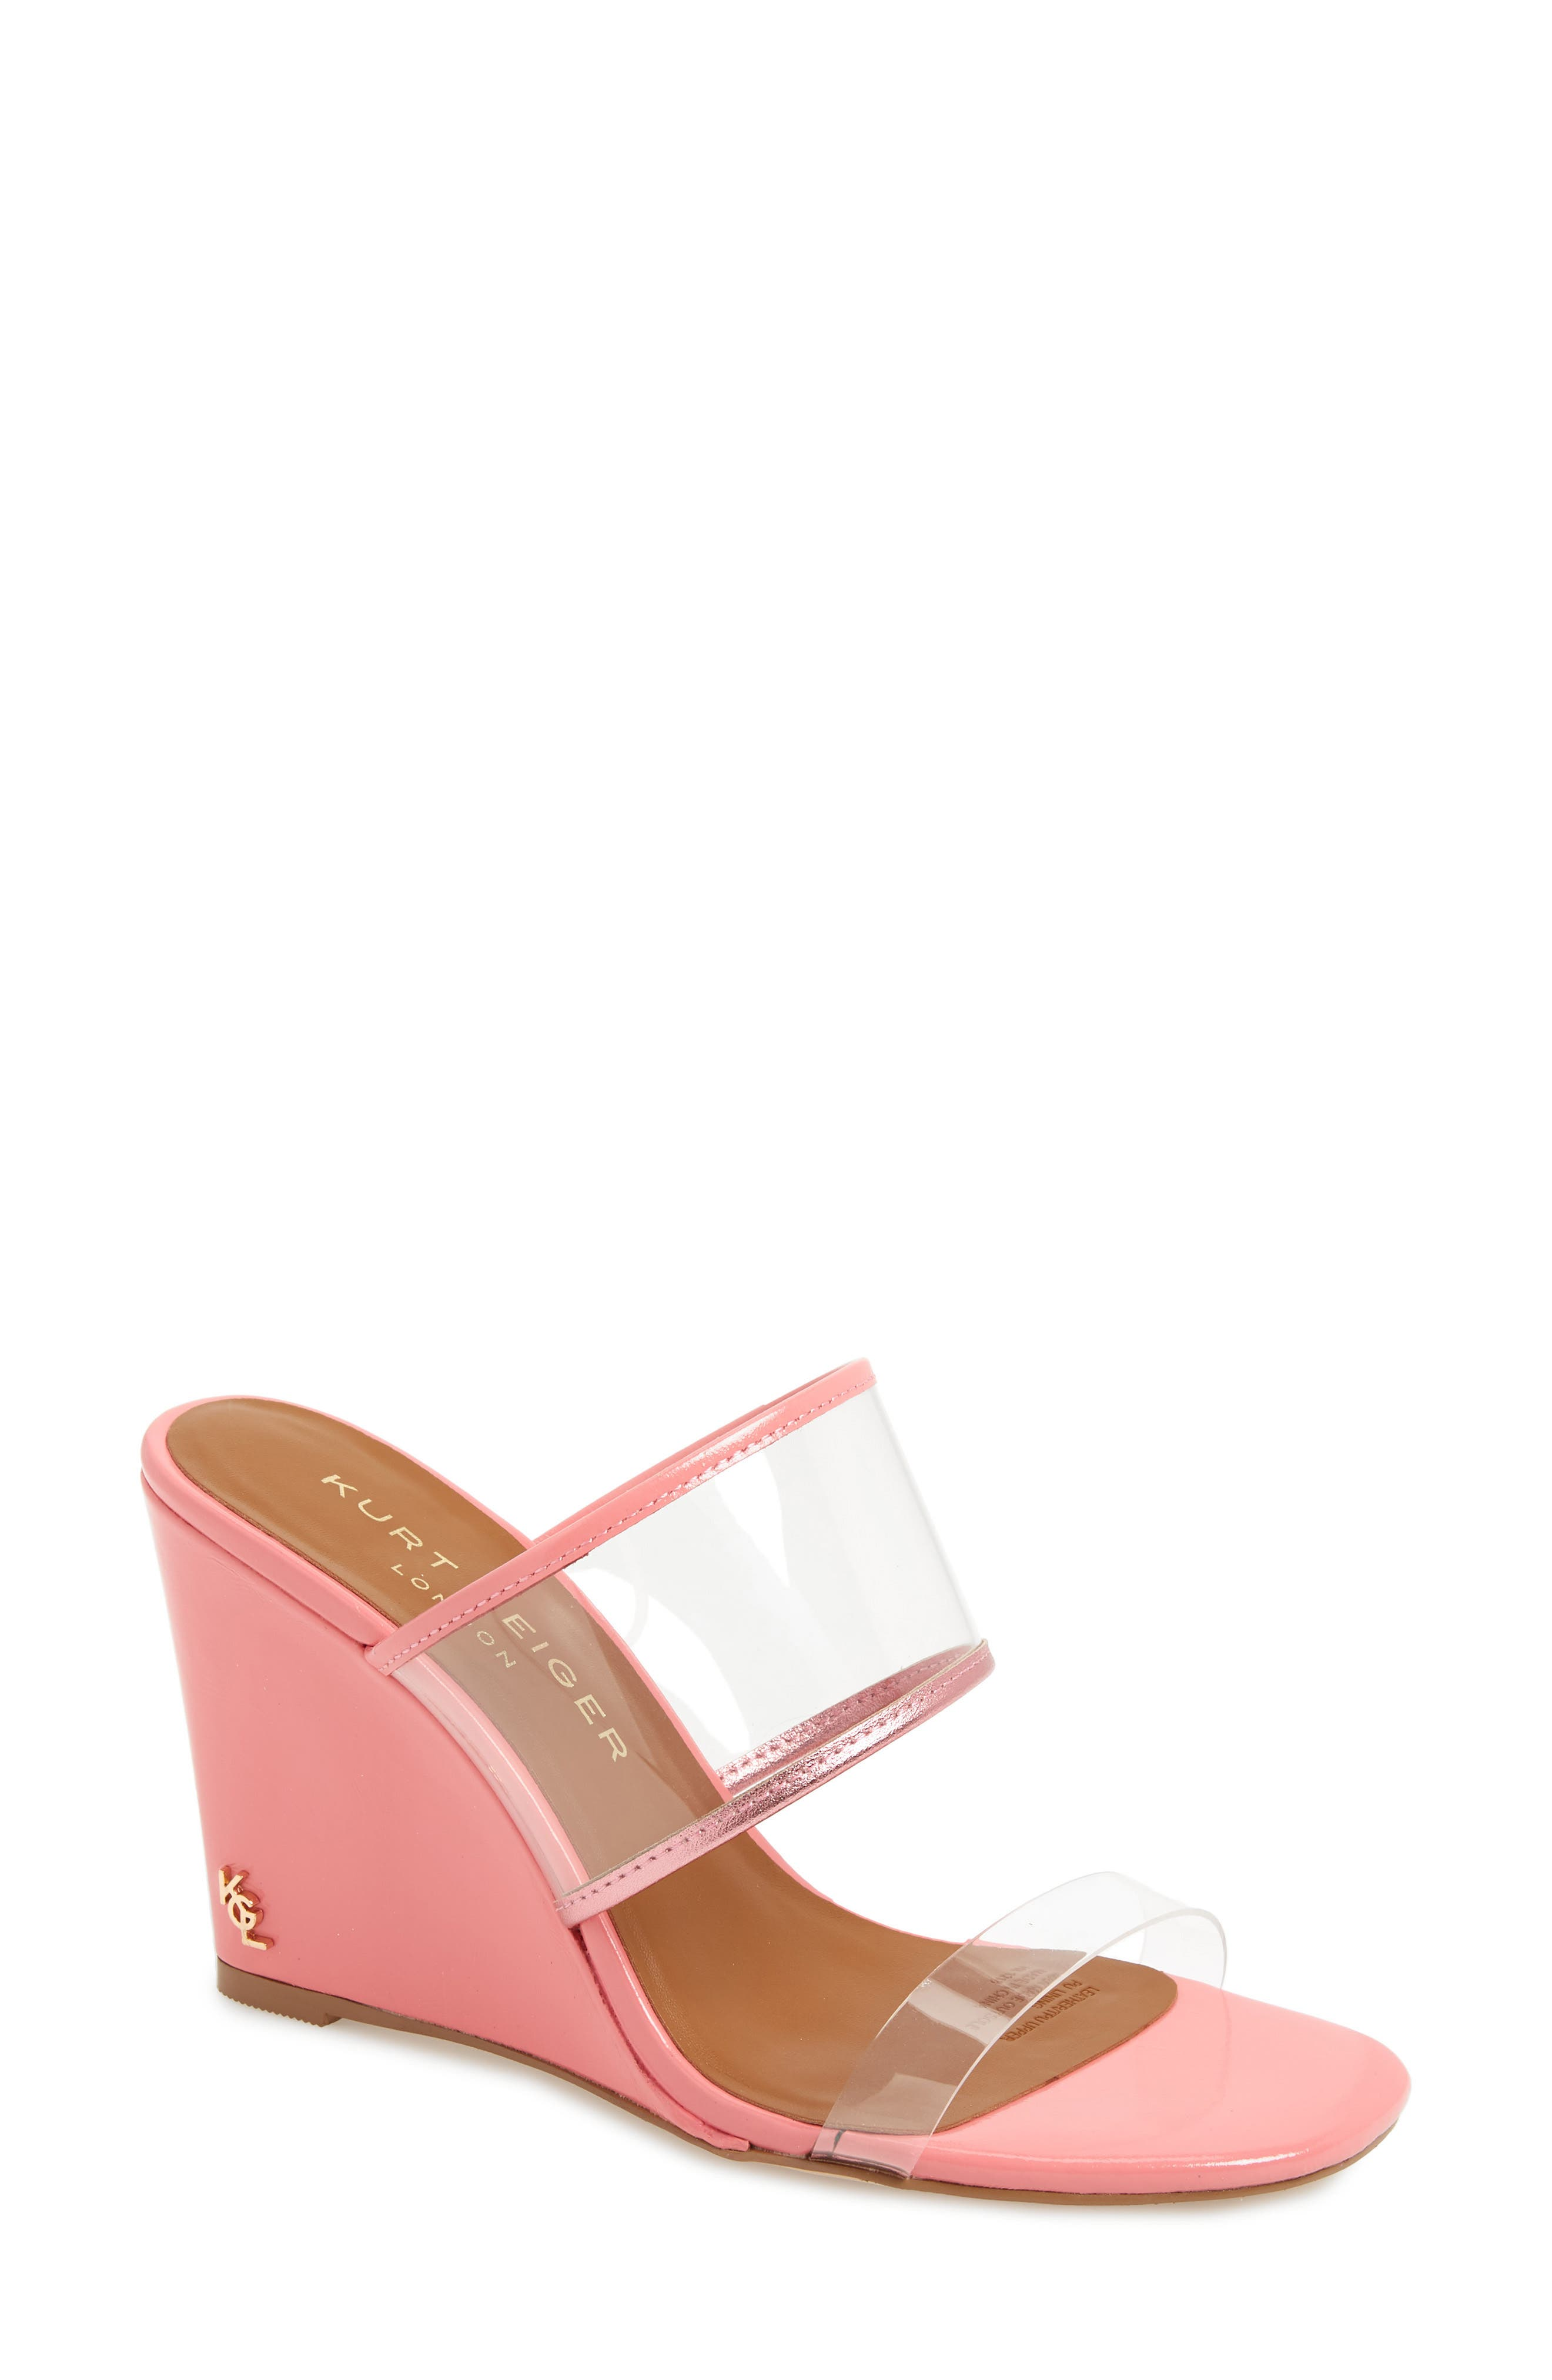 KURT GEIGER LONDON Charing Wedge Slide Sandal, Main, color, PINK FAUX LEATHER